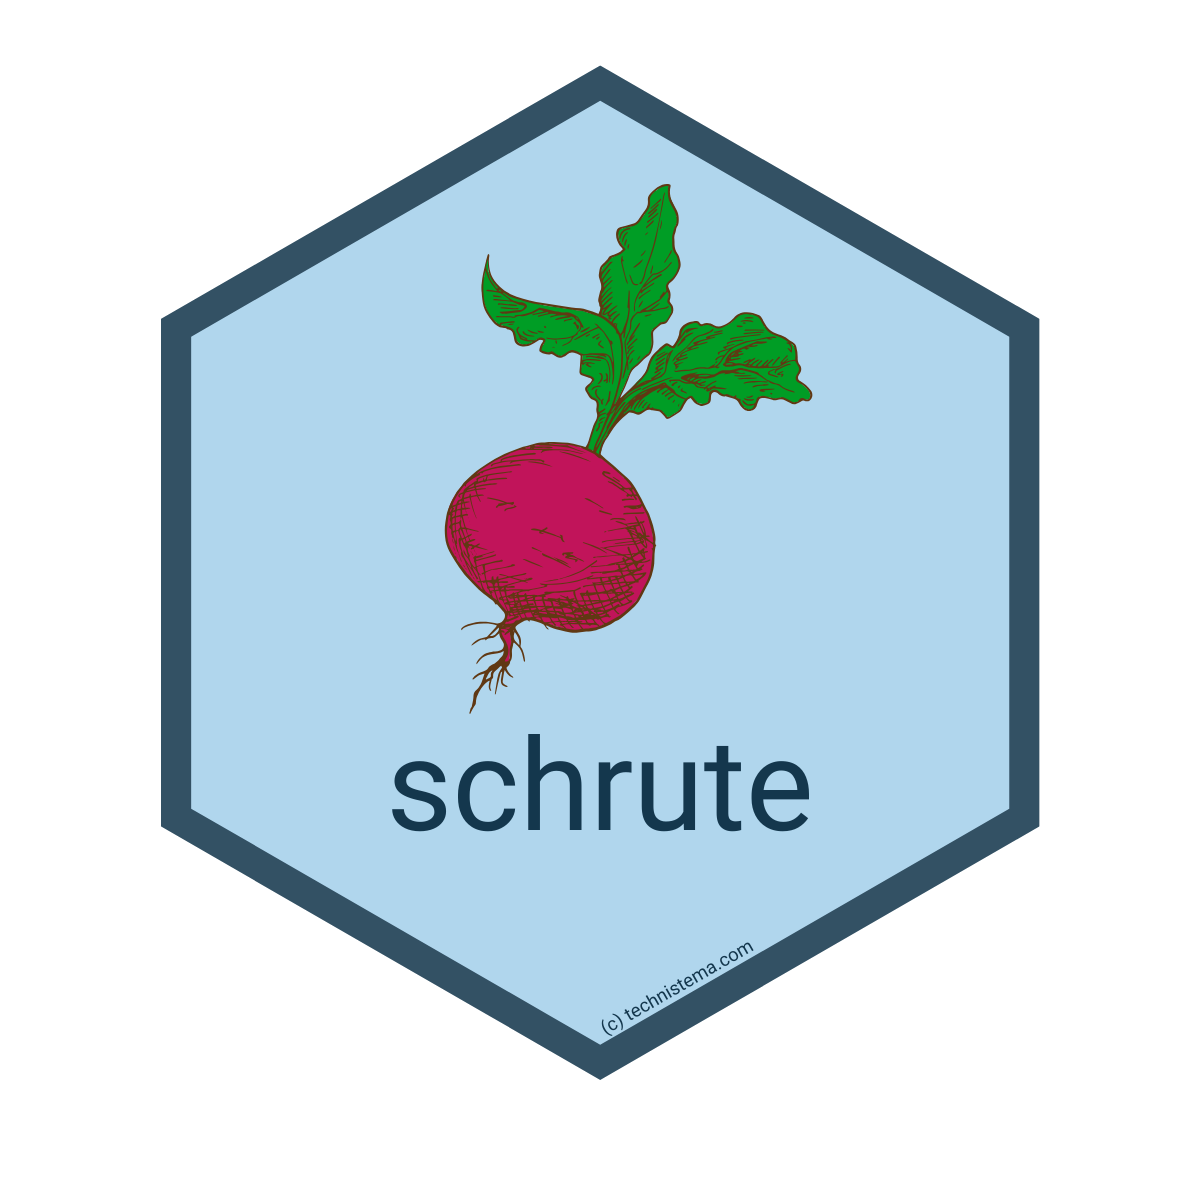 schrute R package